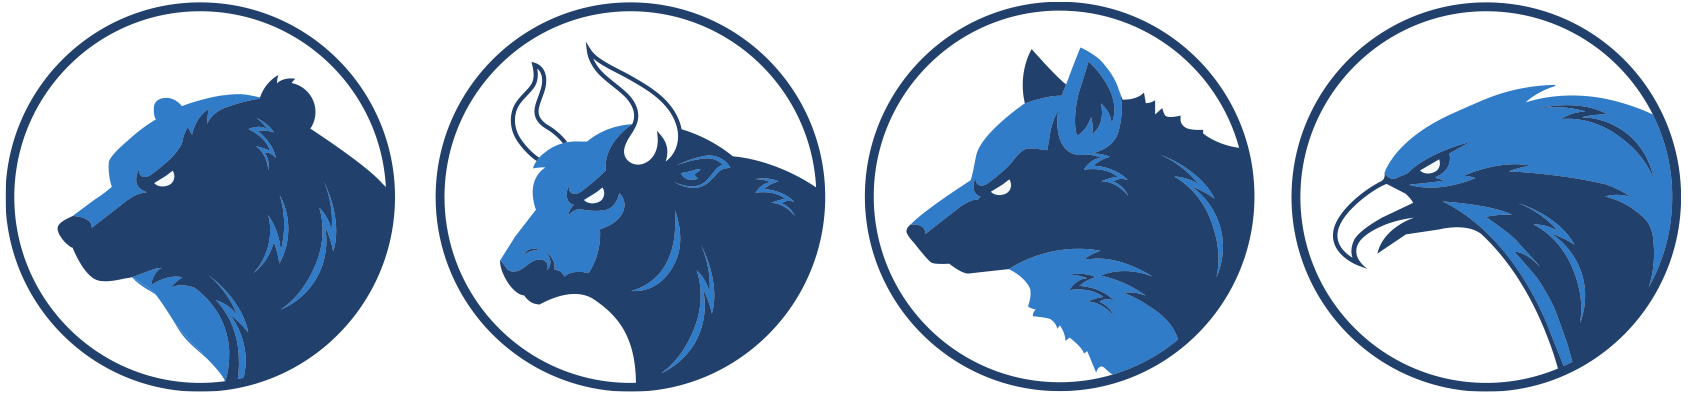 Bear-Bull-Wolf-Eagle-Market-Icons